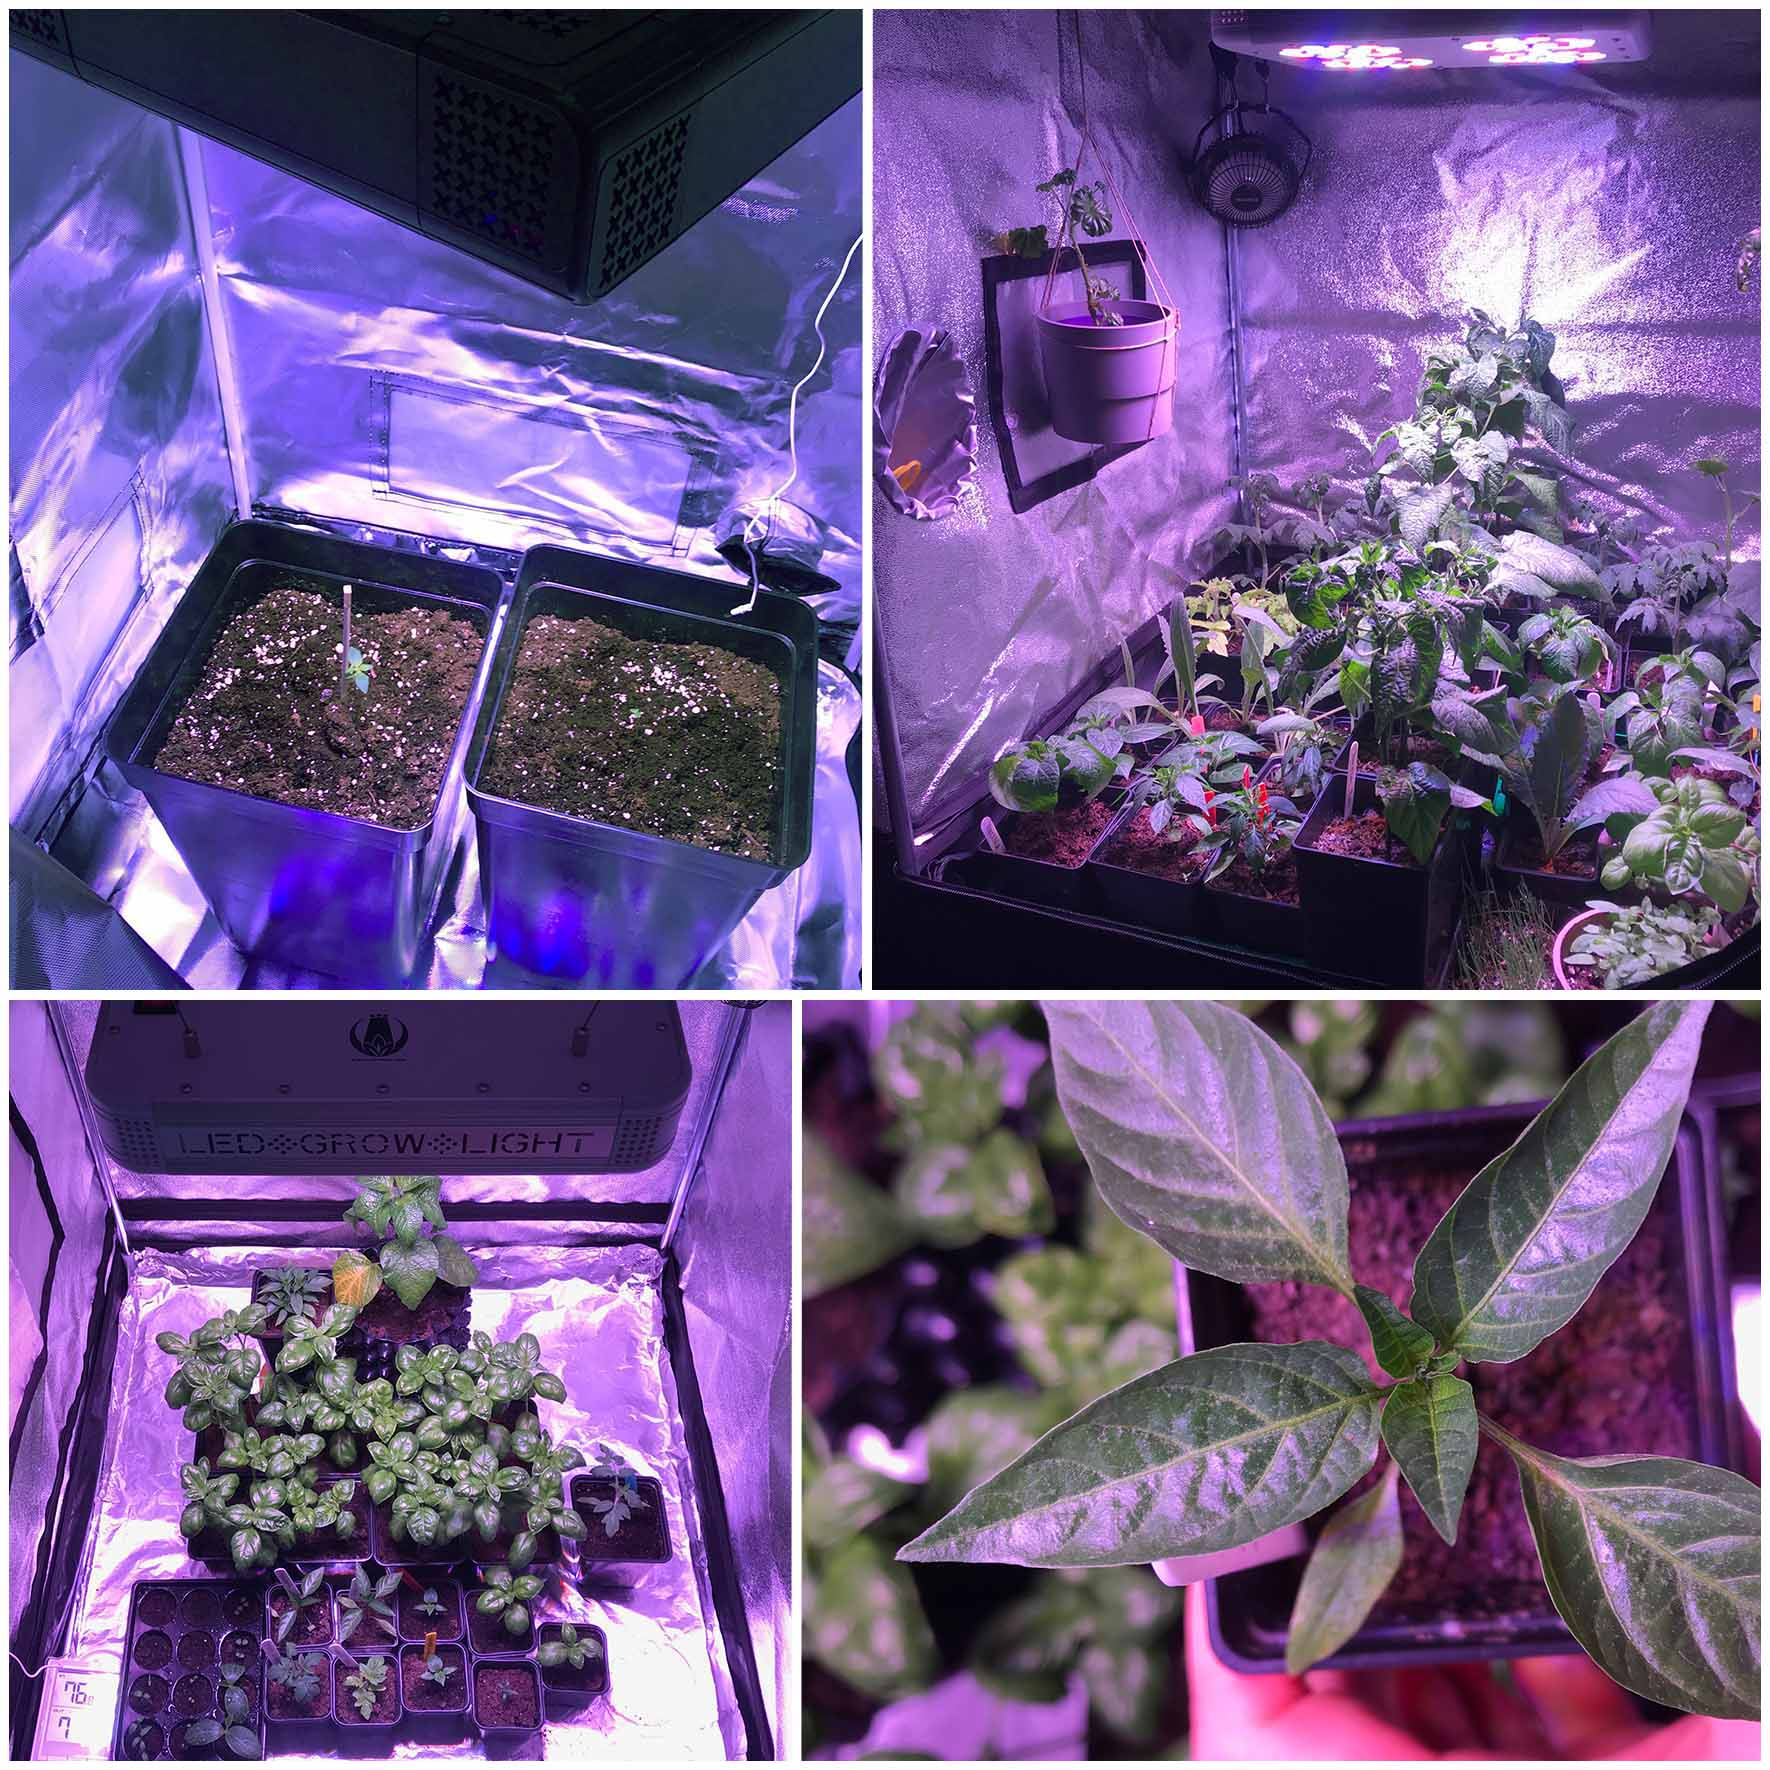 Indoor garden with basil, tomato, peppers, microgreens grown under LED grow light